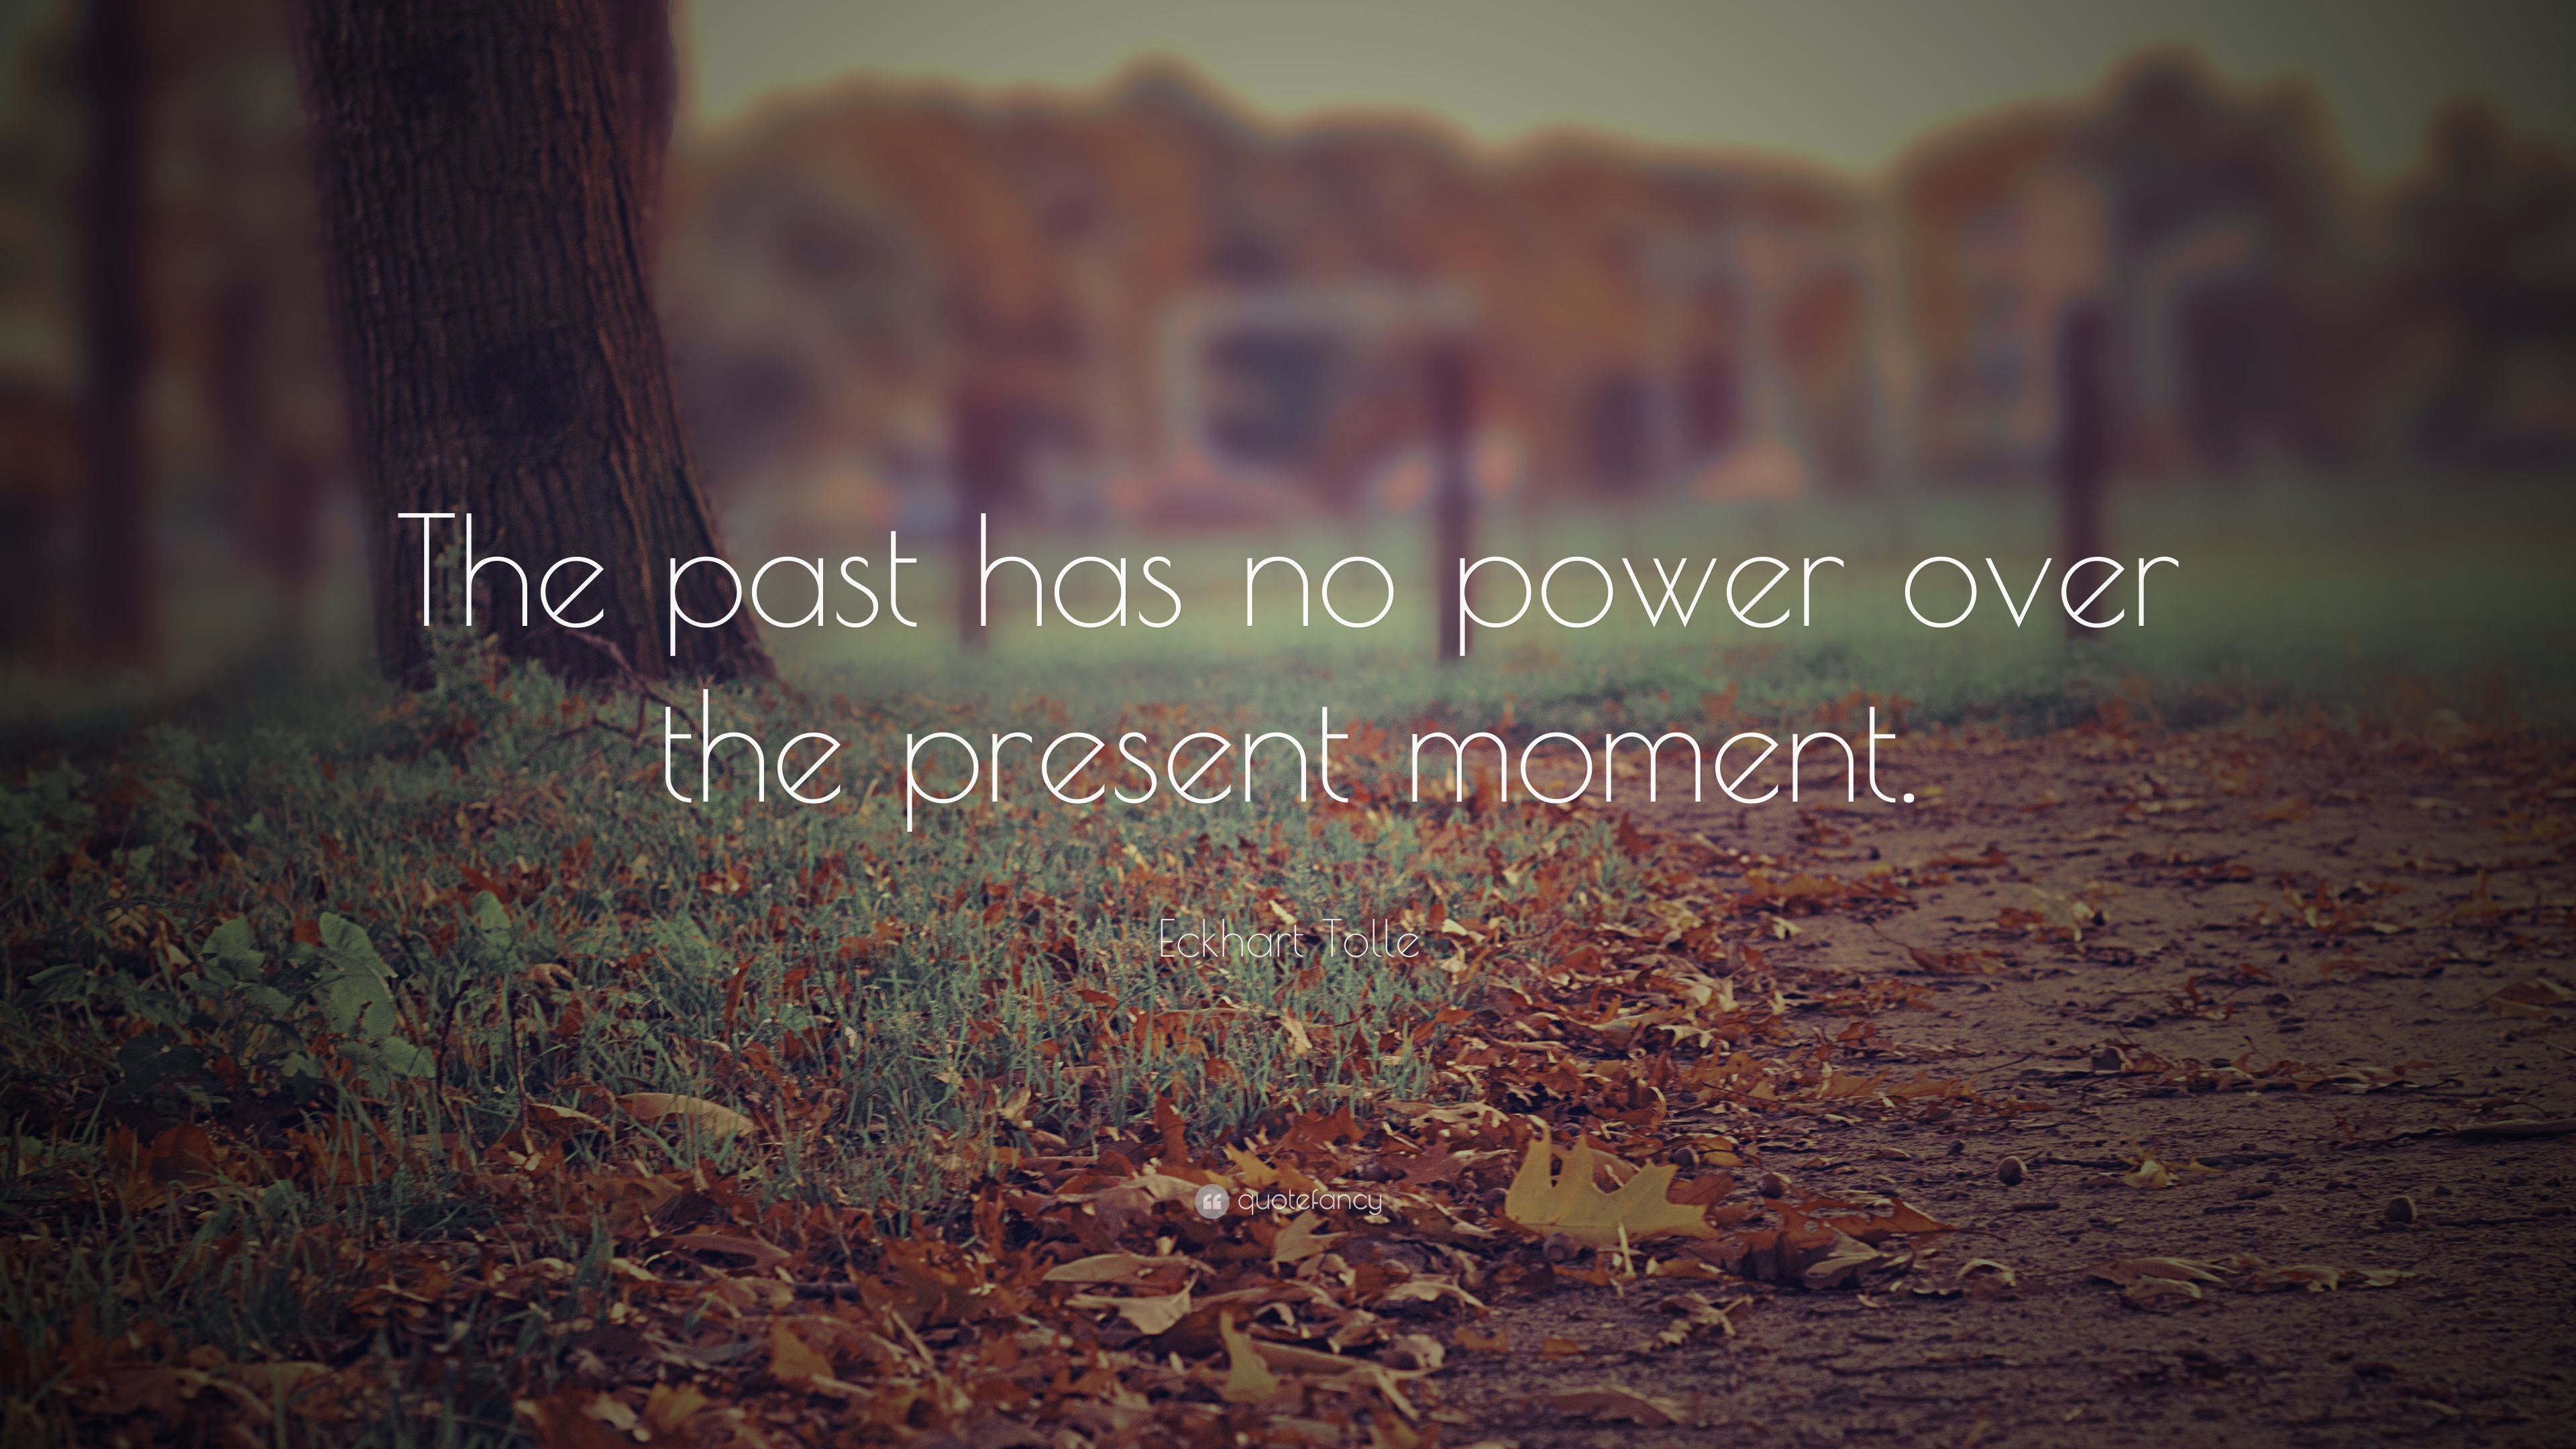 Beautiful Positive Quotes: U201cThe Past Has No Power Over The Present Moment.u201d U2014